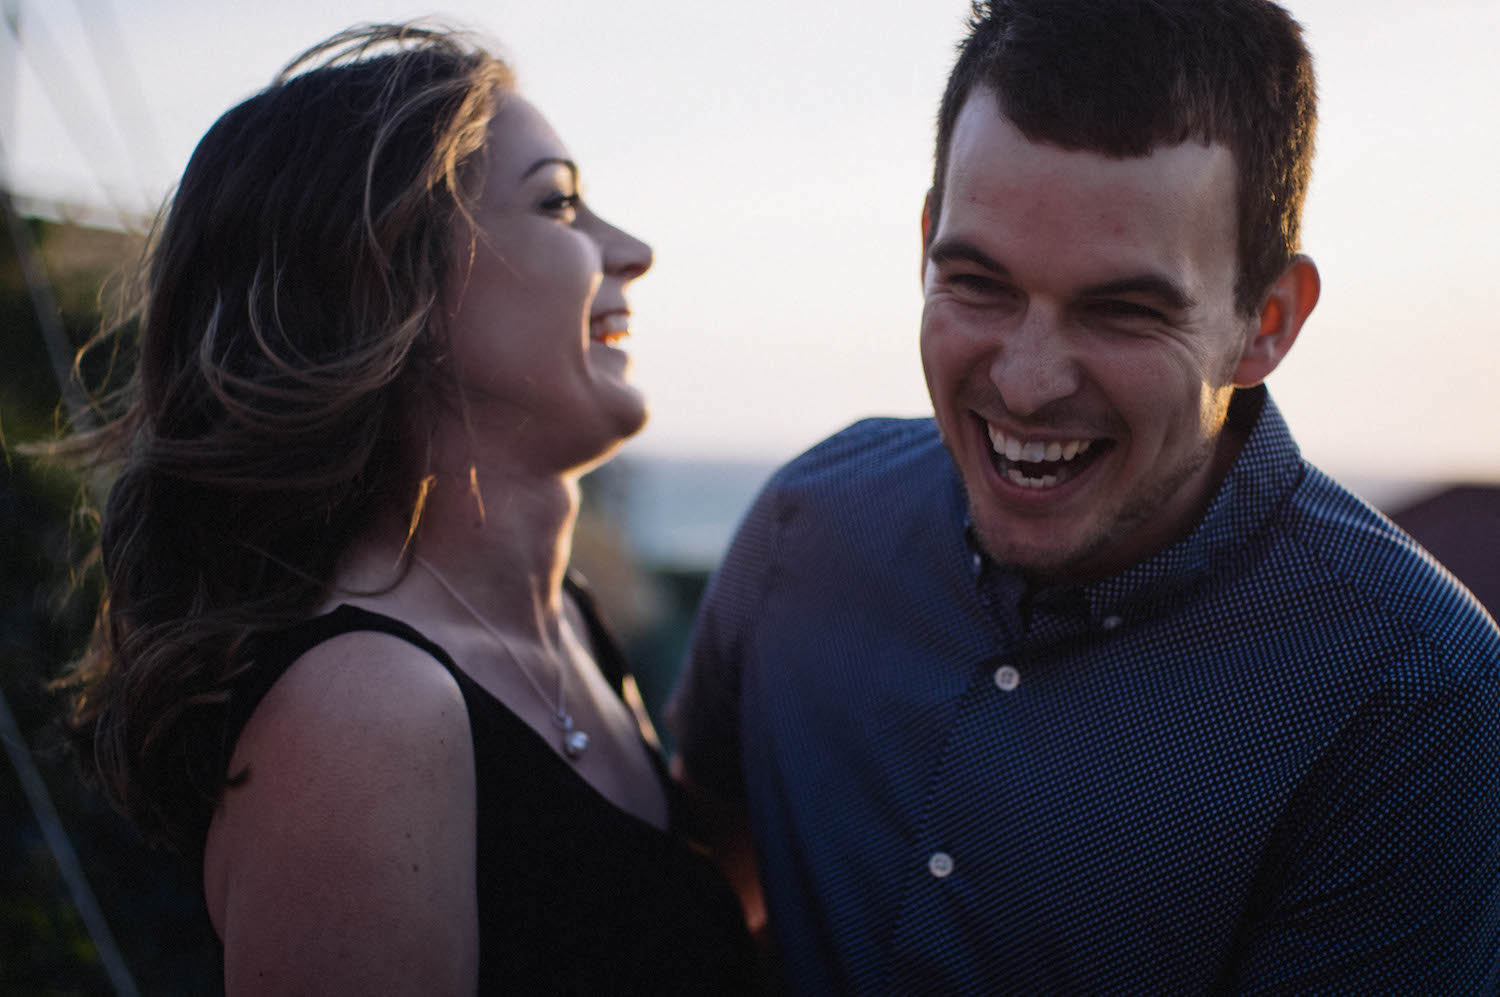 Fremantle Engagement Photographer Glen Kara Roundhouse 5